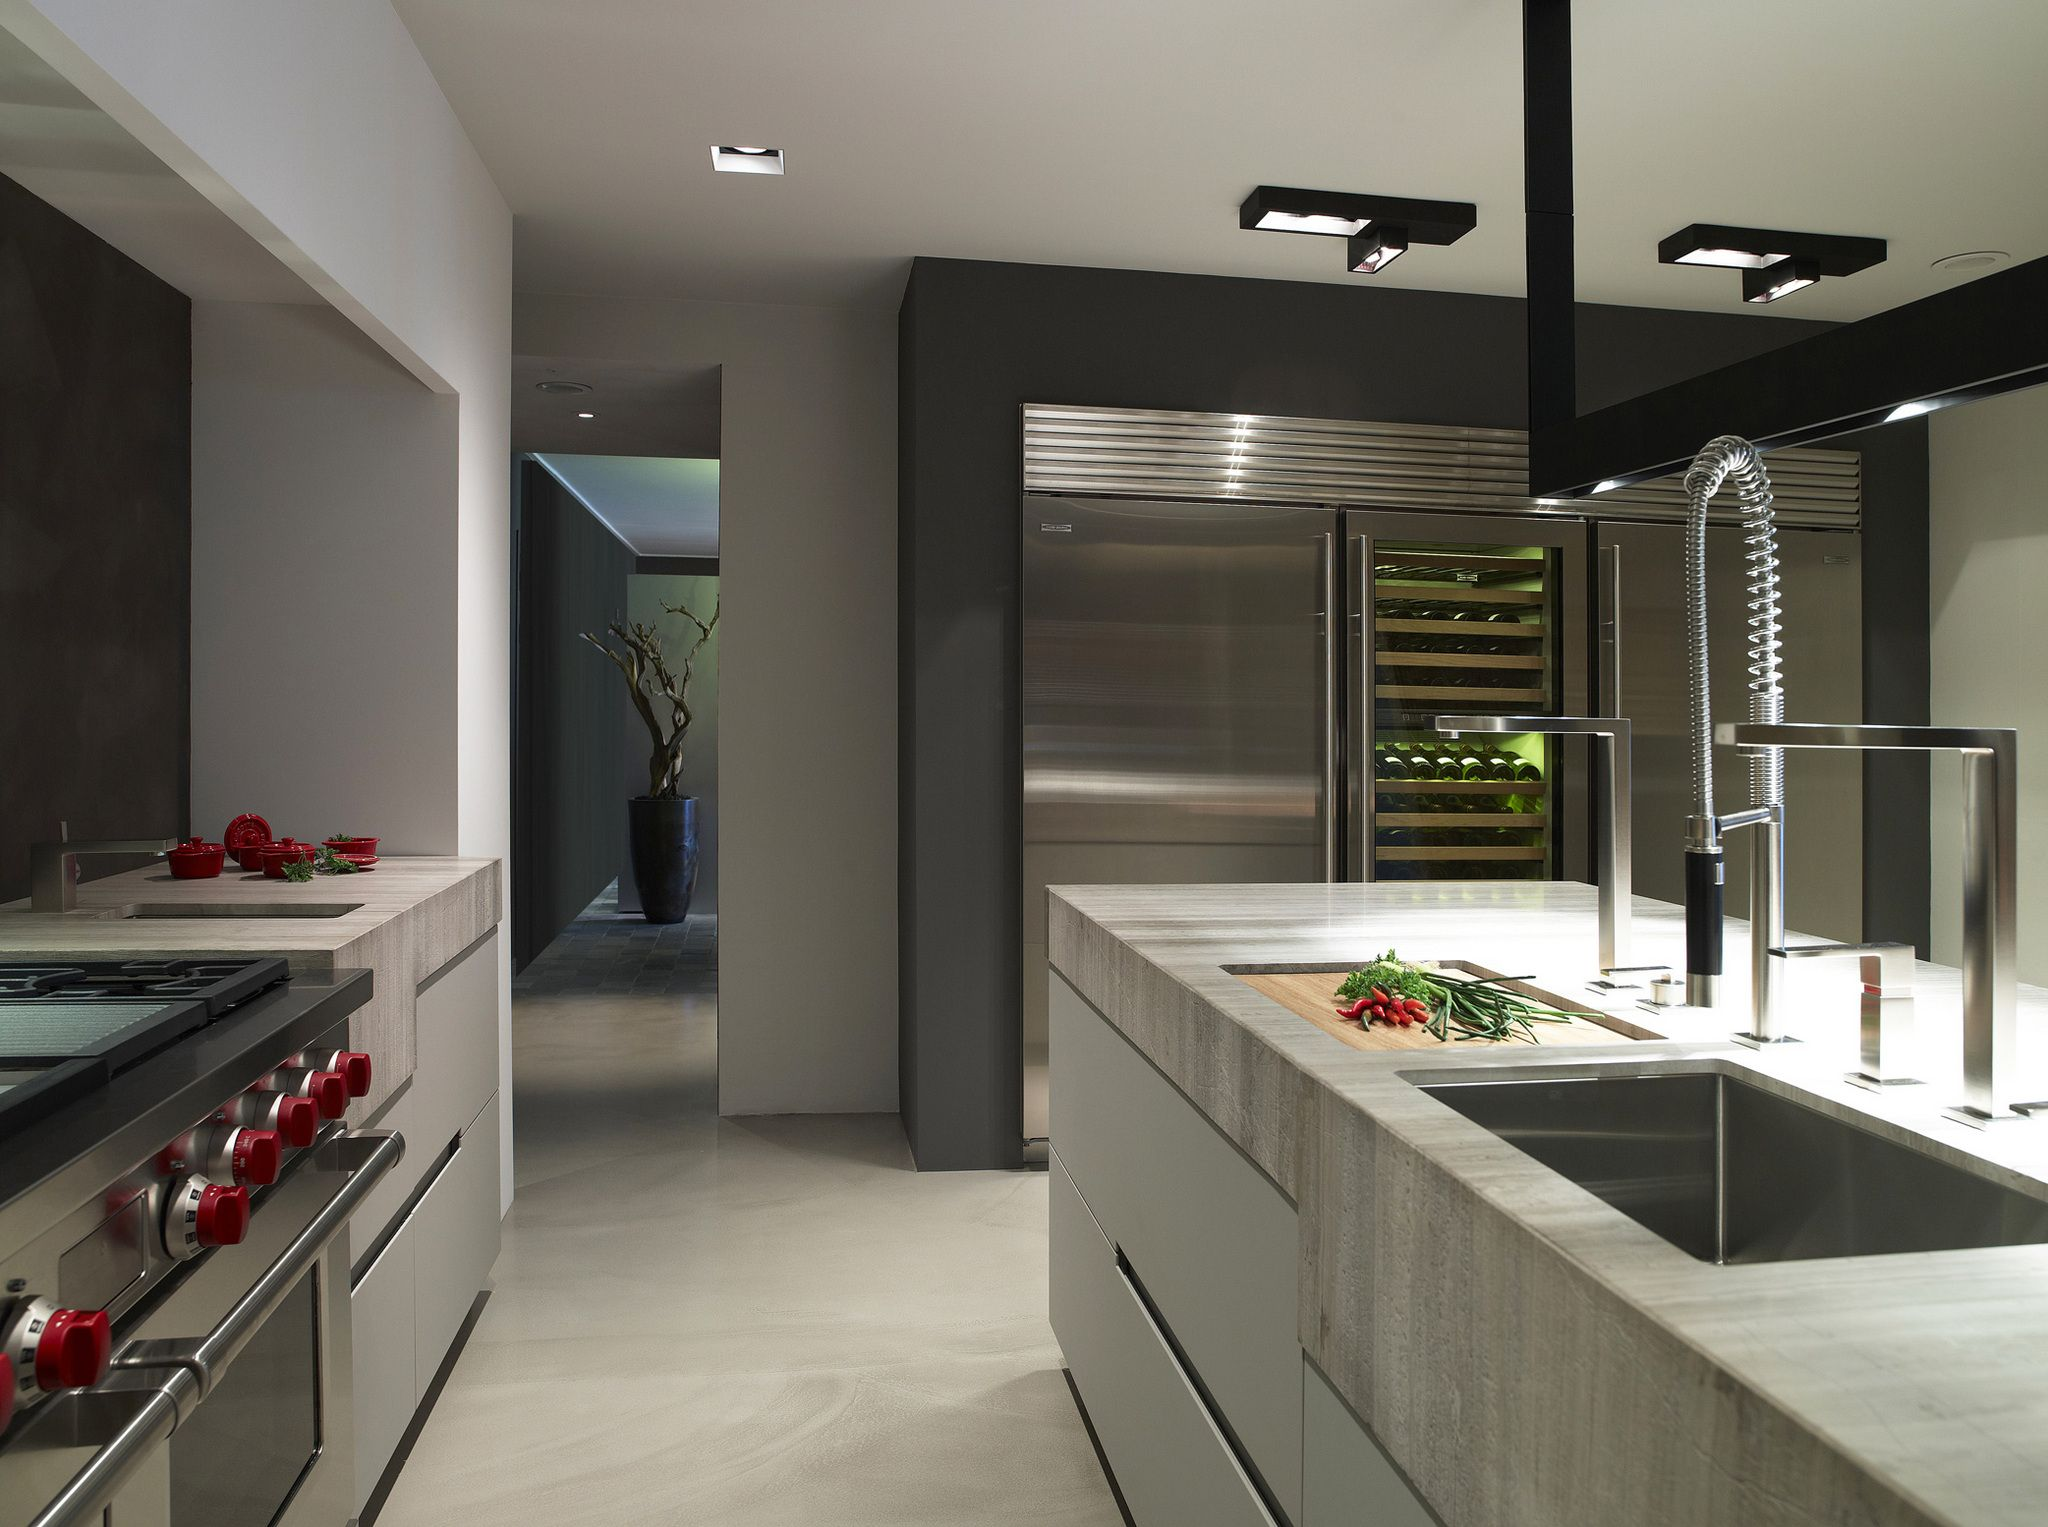 Culimaat high end kitchens interiors italiaanse keukens en appliances gaggenau kitchen pinned by www modlar com